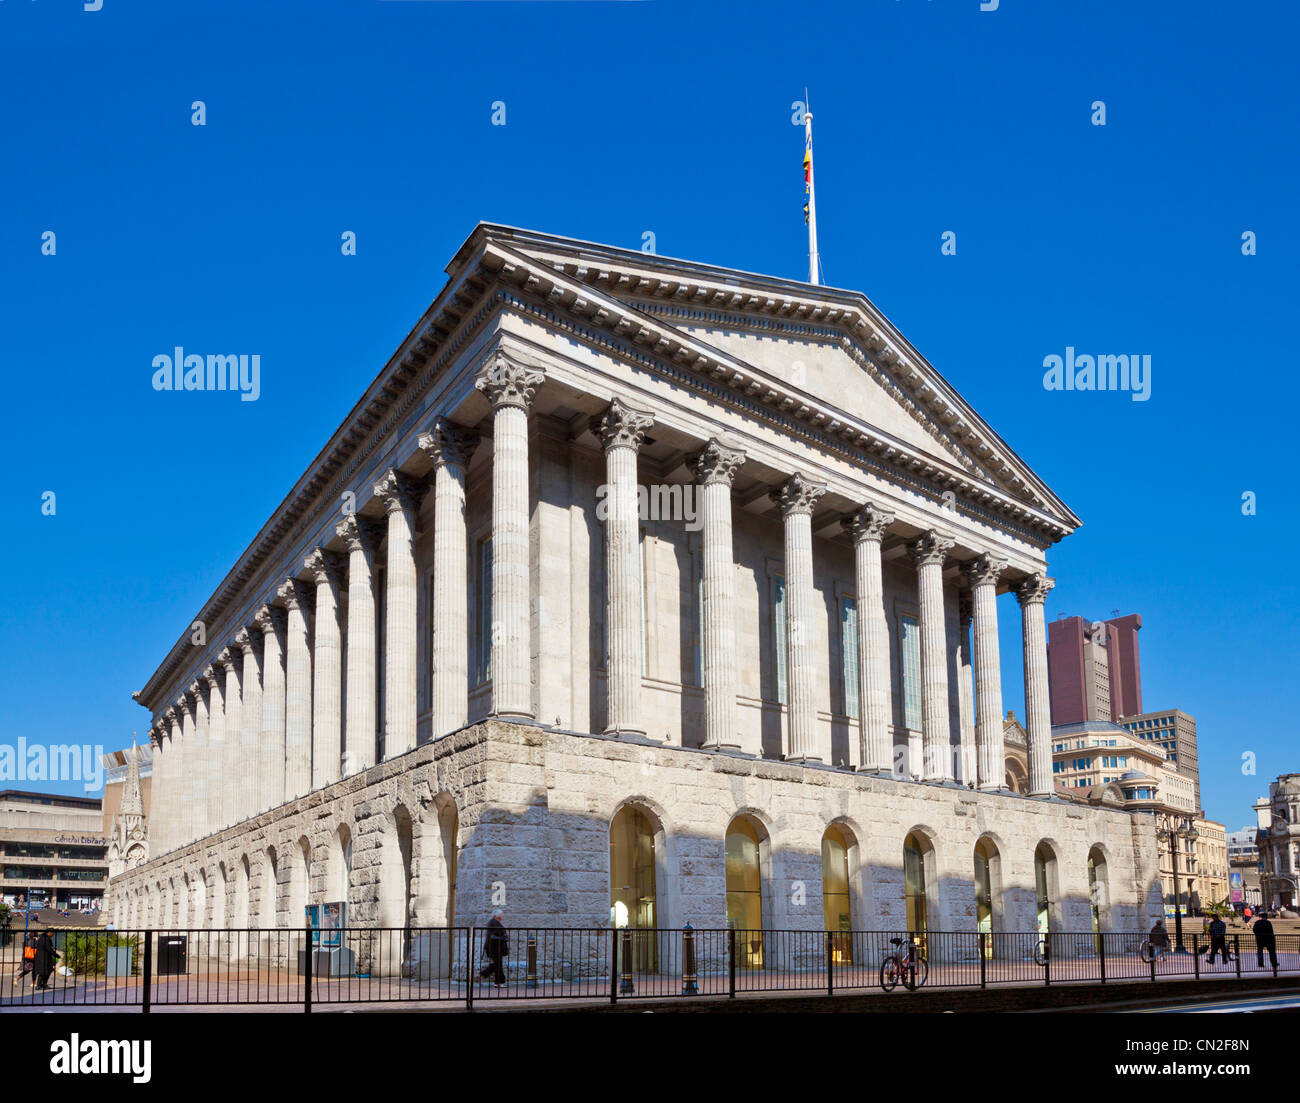 Birmingham town hall concert venue Victoria Square city centre West Midlands England UK GB EU Europe - Stock Image